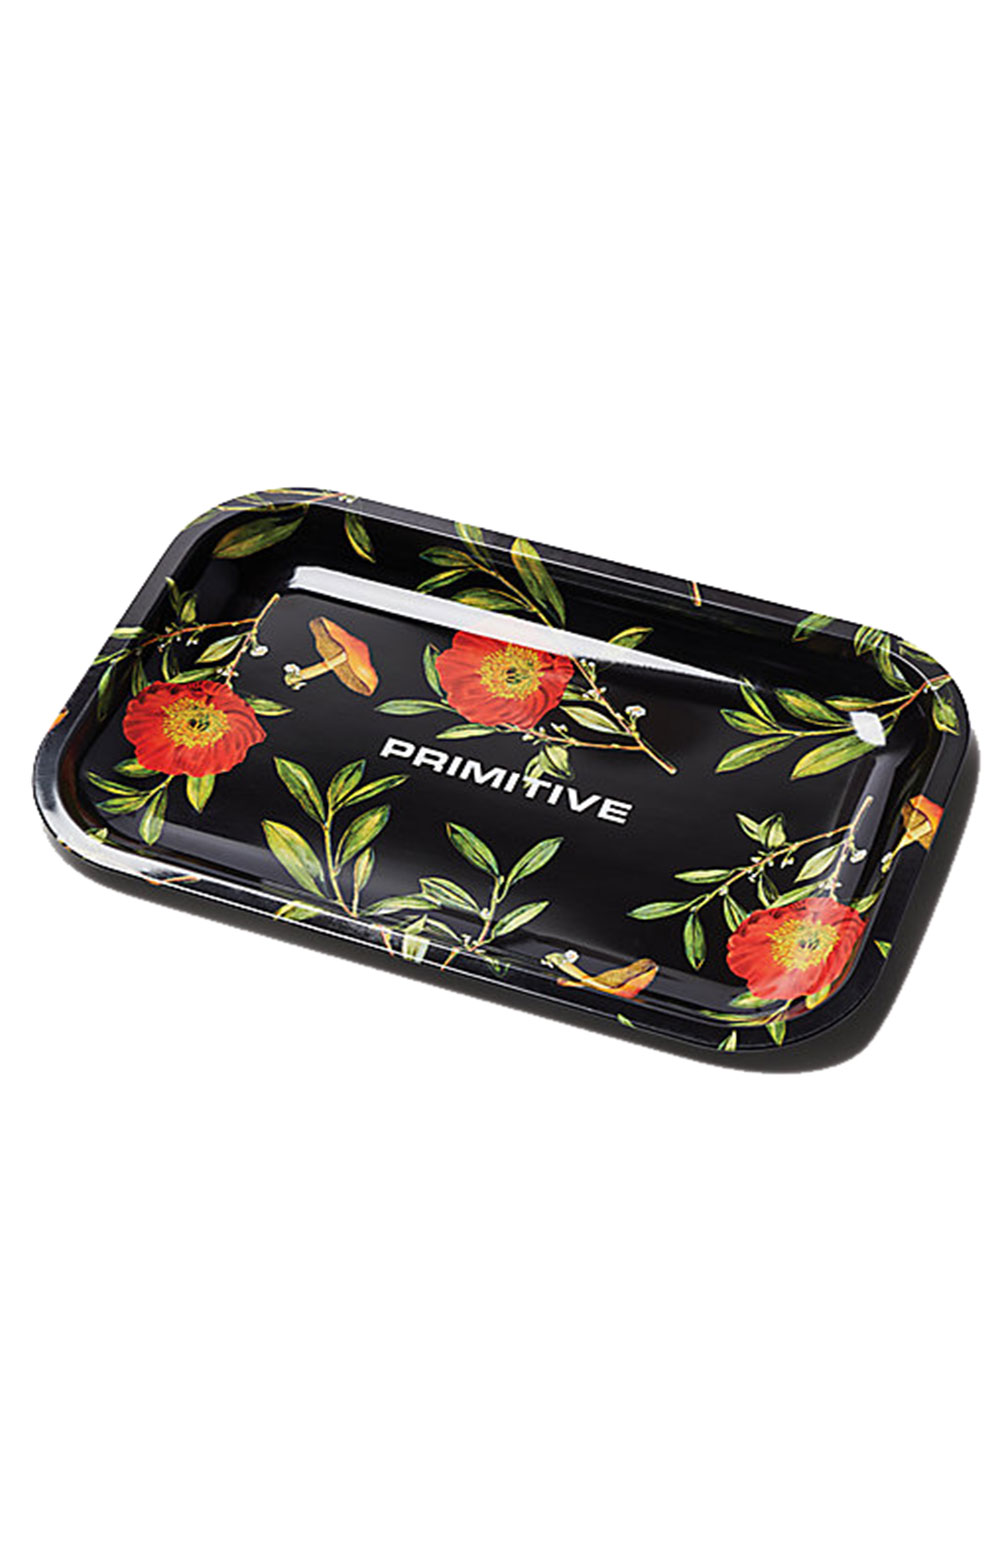 Horticulture Tray